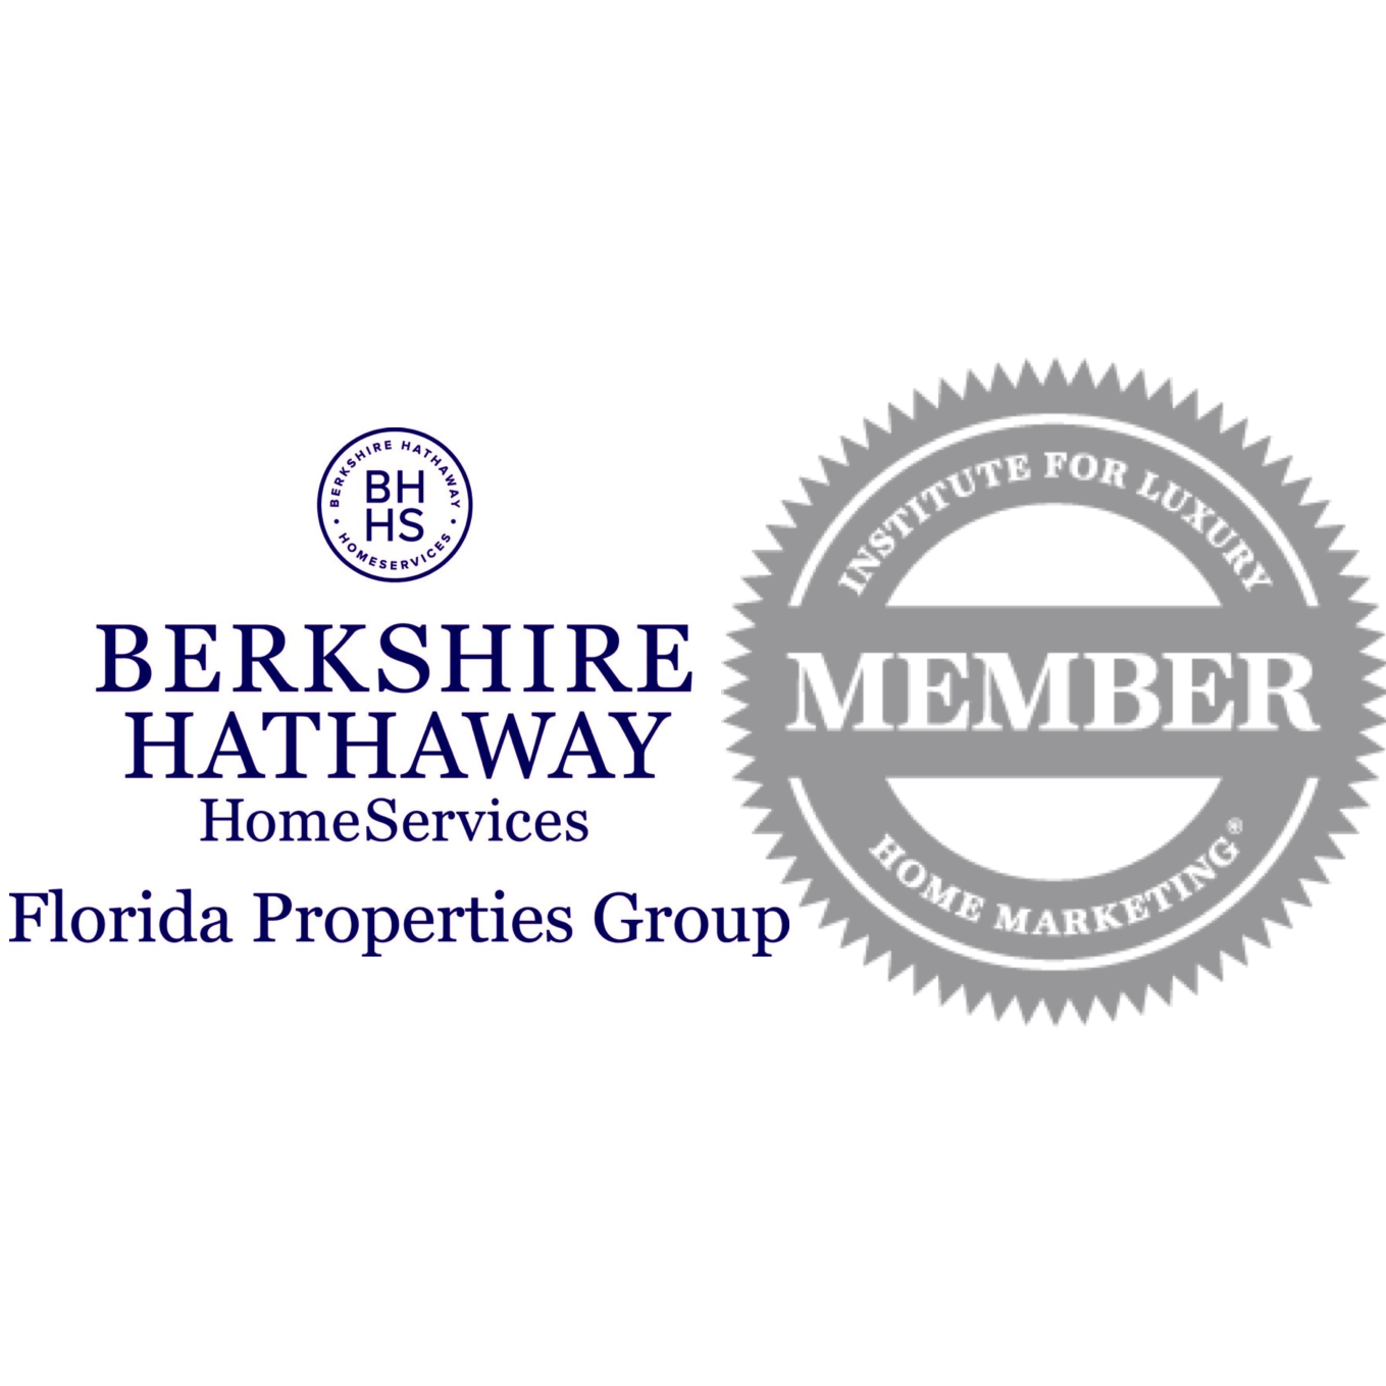 Geovanni D. Este | Berkshire Hathaway HomeServices Florida Properties Group - Tampa, FL - Real Estate Agents